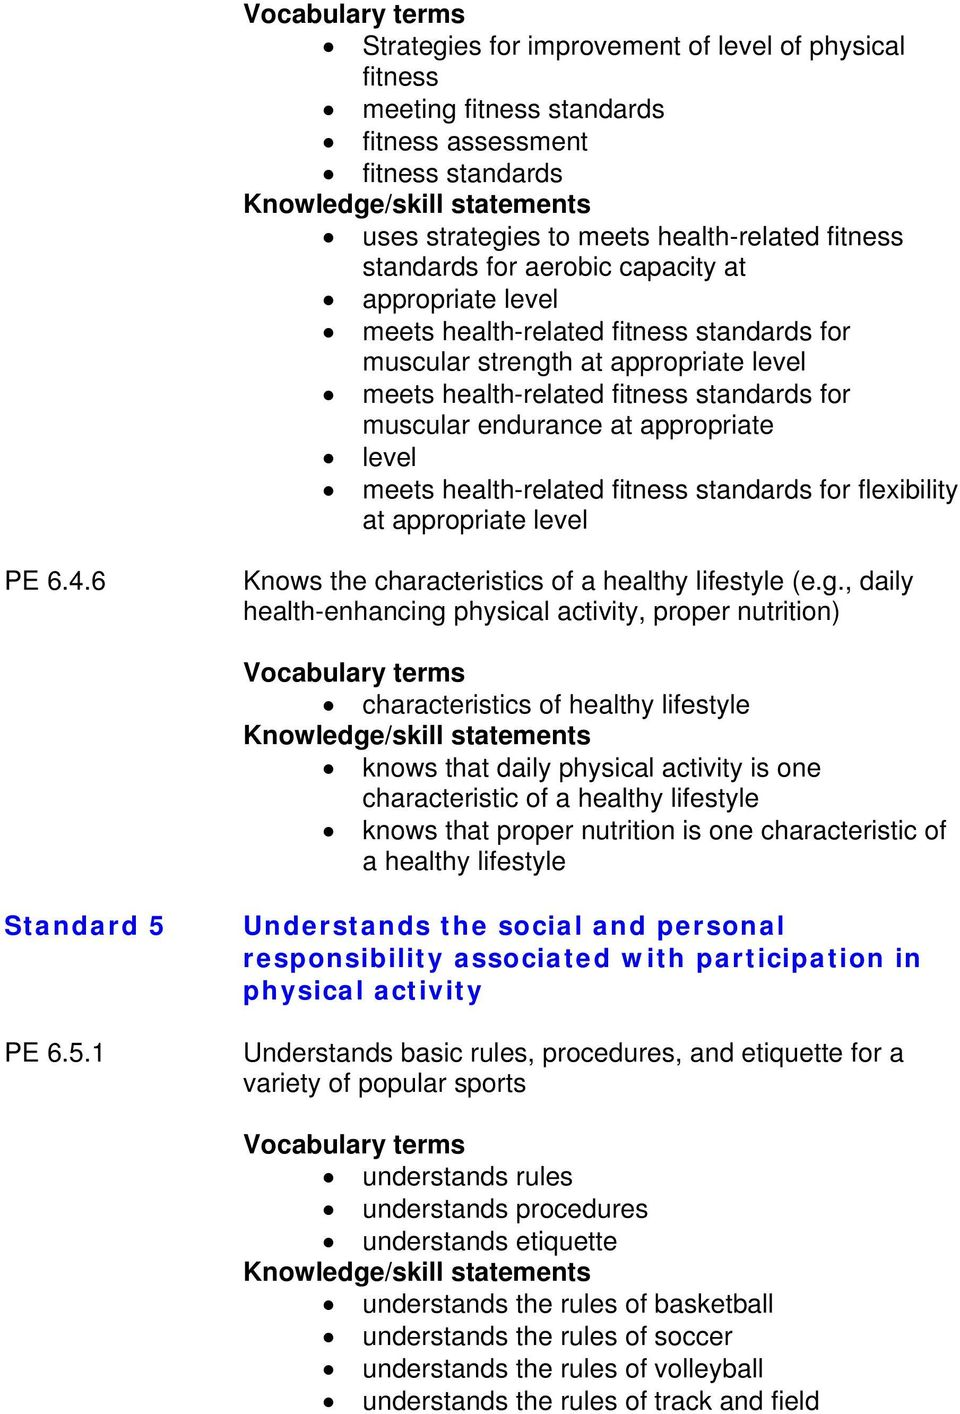 health-related fitness standards for flexibility at appropriate level PE 6.4.6 Knows the characteristics of a healthy lifestyle (e.g.